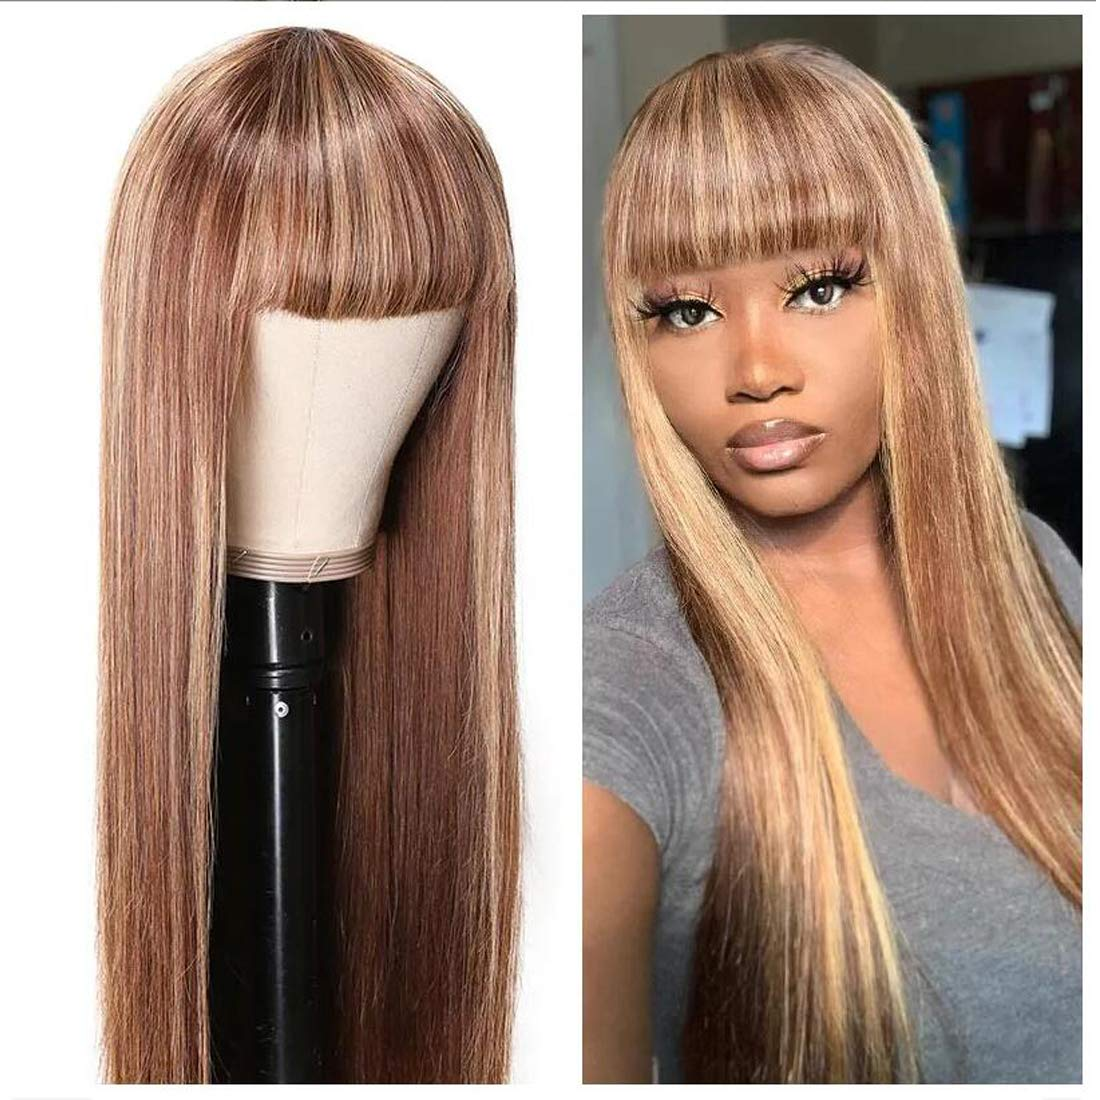 Amazon Com Beauty Forever Honey Blond Ombre Highlight Silk Straight Wig With Bangs Glueless None Lace Human Hair Wigs For Women Brazilian Virgin Hair Full Machine Made Wig Breathable Net Cap 20